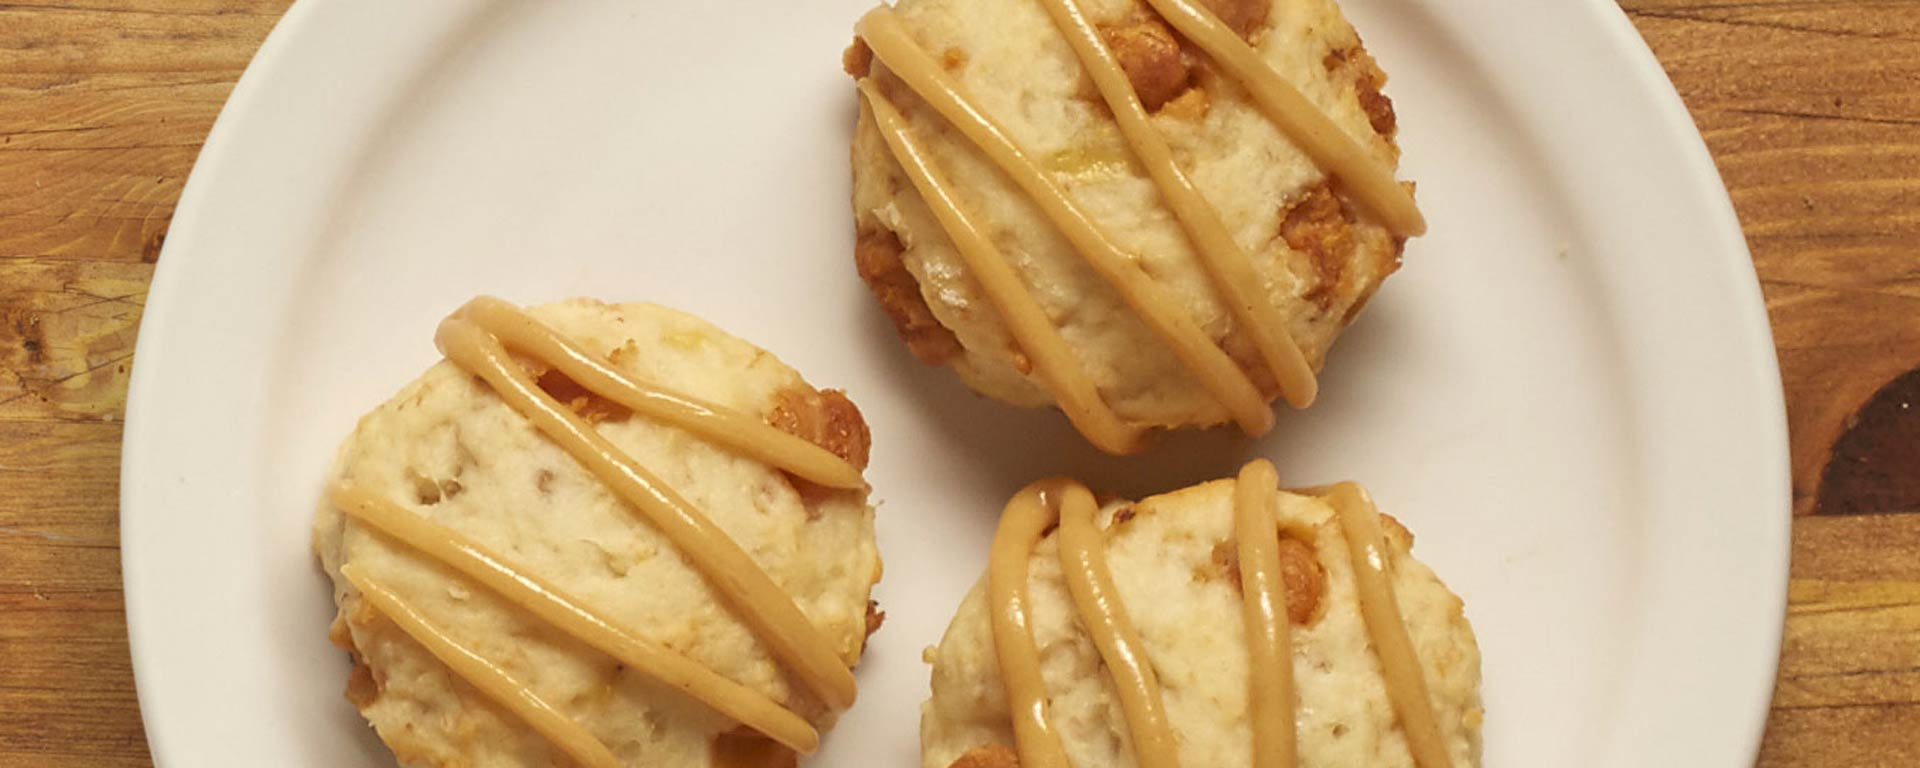 Photo of - PB & Banana Biscuits